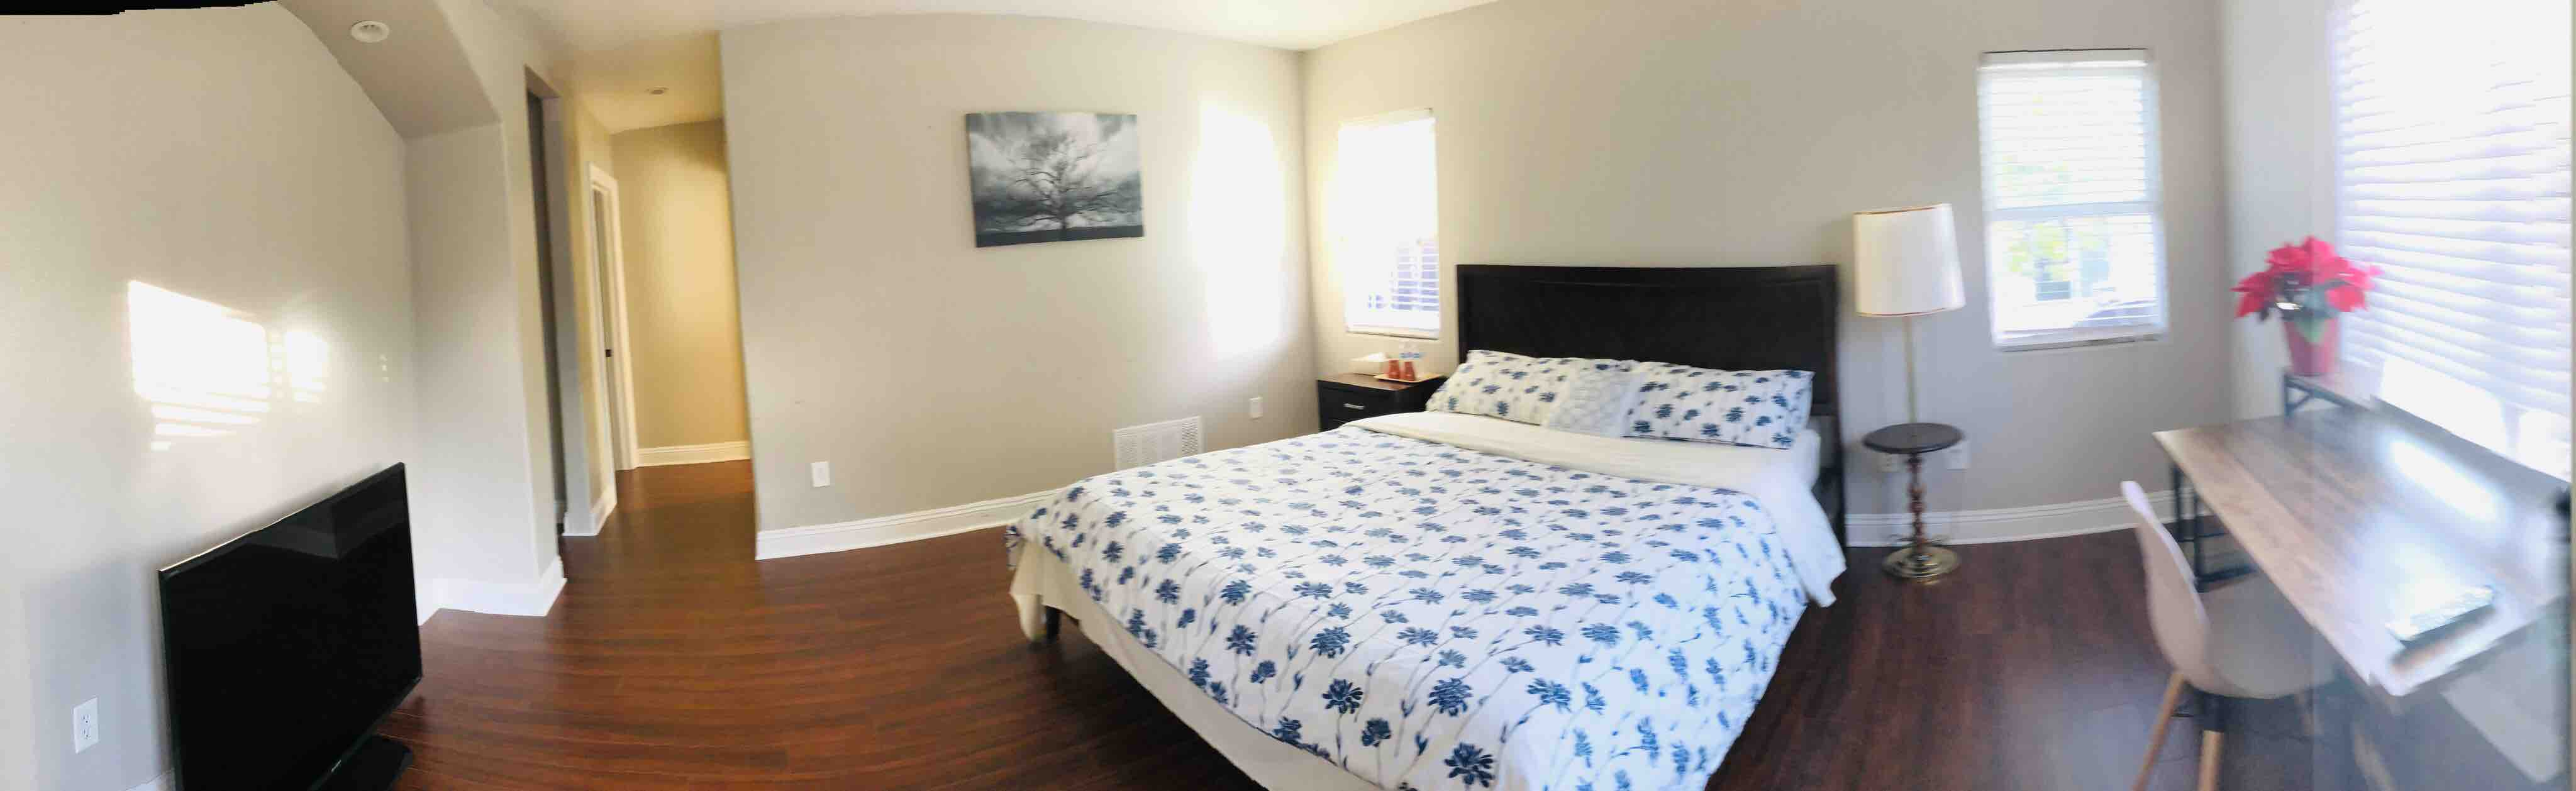 Master Bedroom With Cal King Bed 24hrac Smart Tv Houses For Rent In Rowland Heights California United States